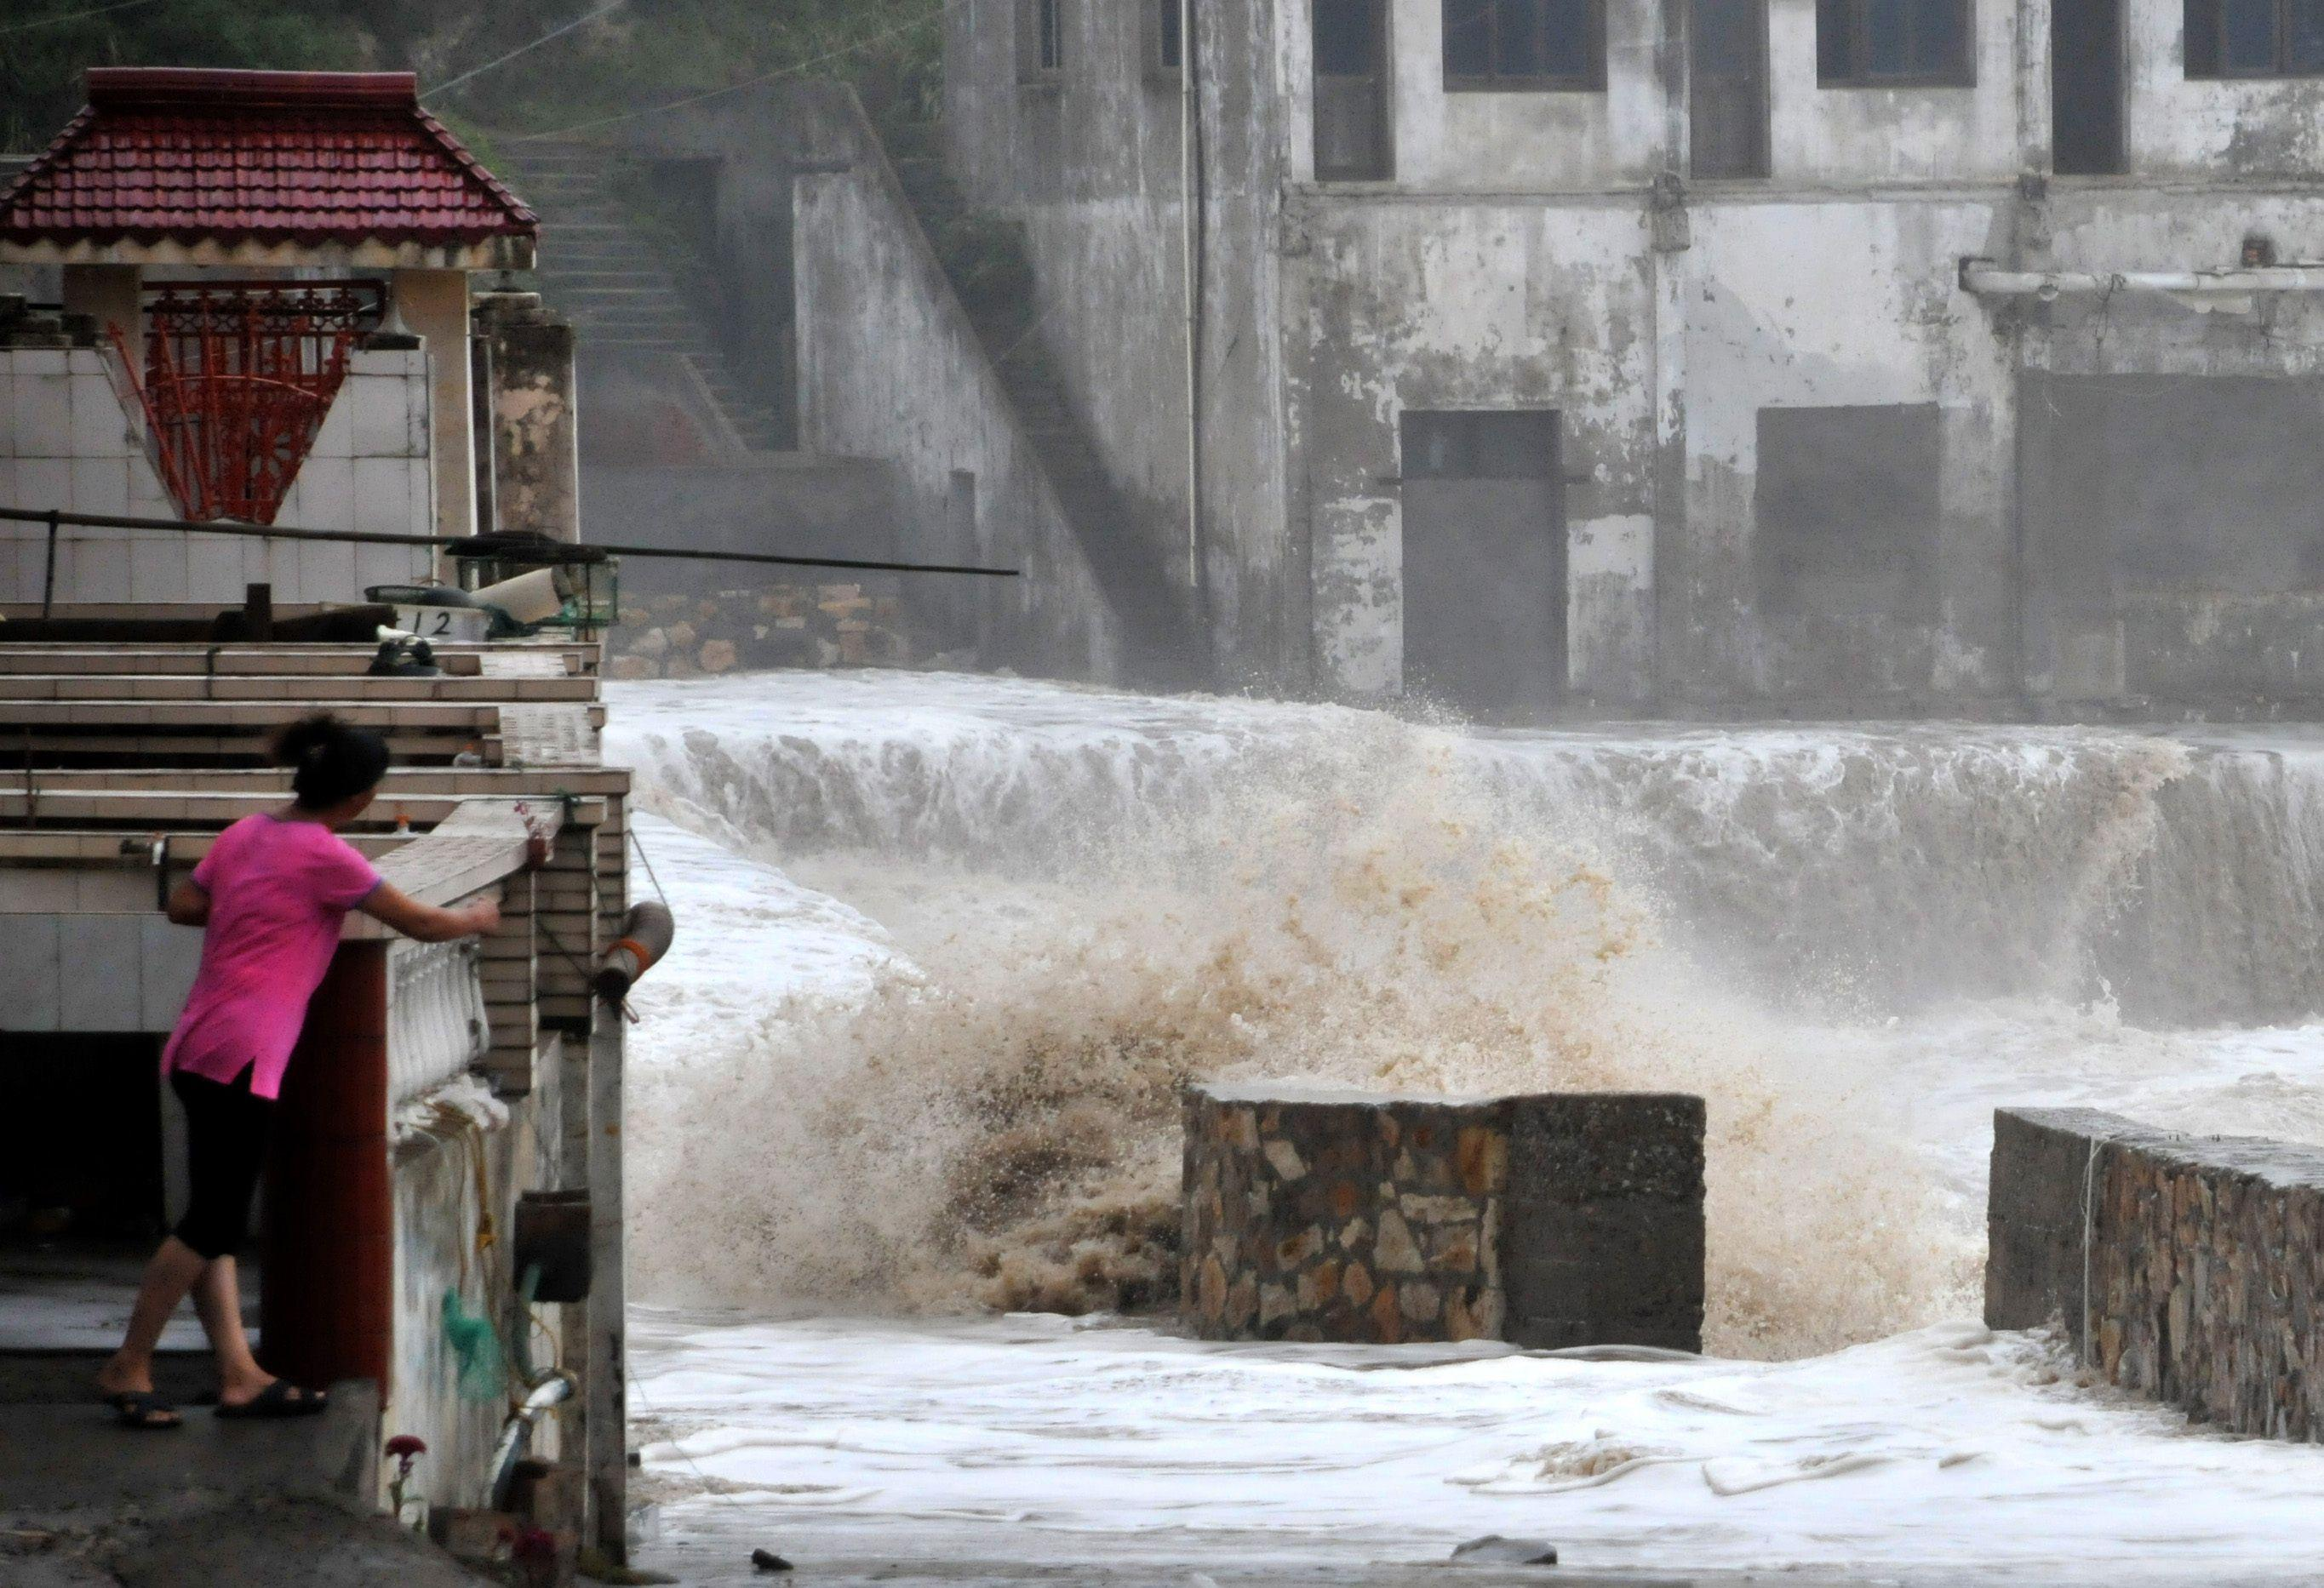 A woman looks on as a huge wave hits the dike as Typhoon Fitow moves to make its landfall in Wenling, east China's Zhejiang province on October 6, 2013. China was on its highest alert for Typhoon Fitow on October 6, with tens of thousands evacuated as the storm was set to slam into the east coast. AFP PHOTO